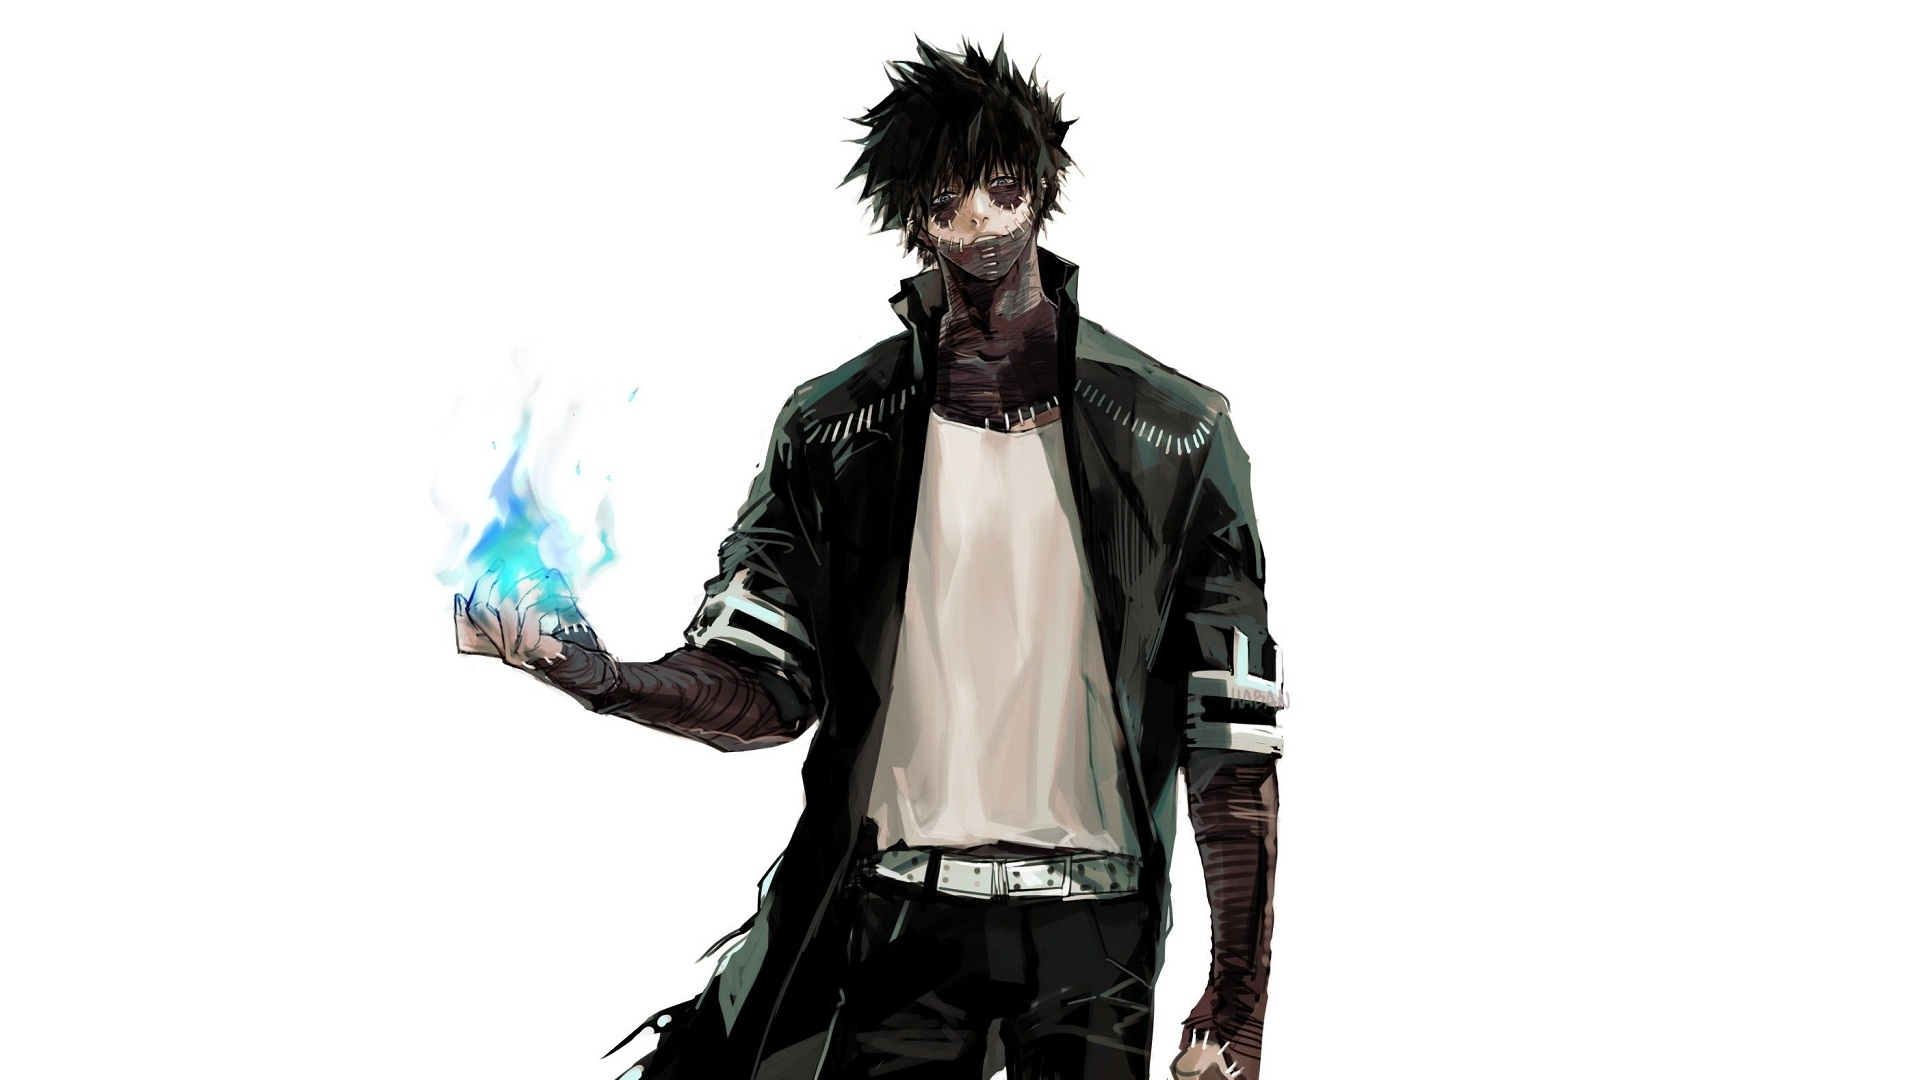 Dabi Fanart Wallpaper Hd Anime 4k Wallpapers Images